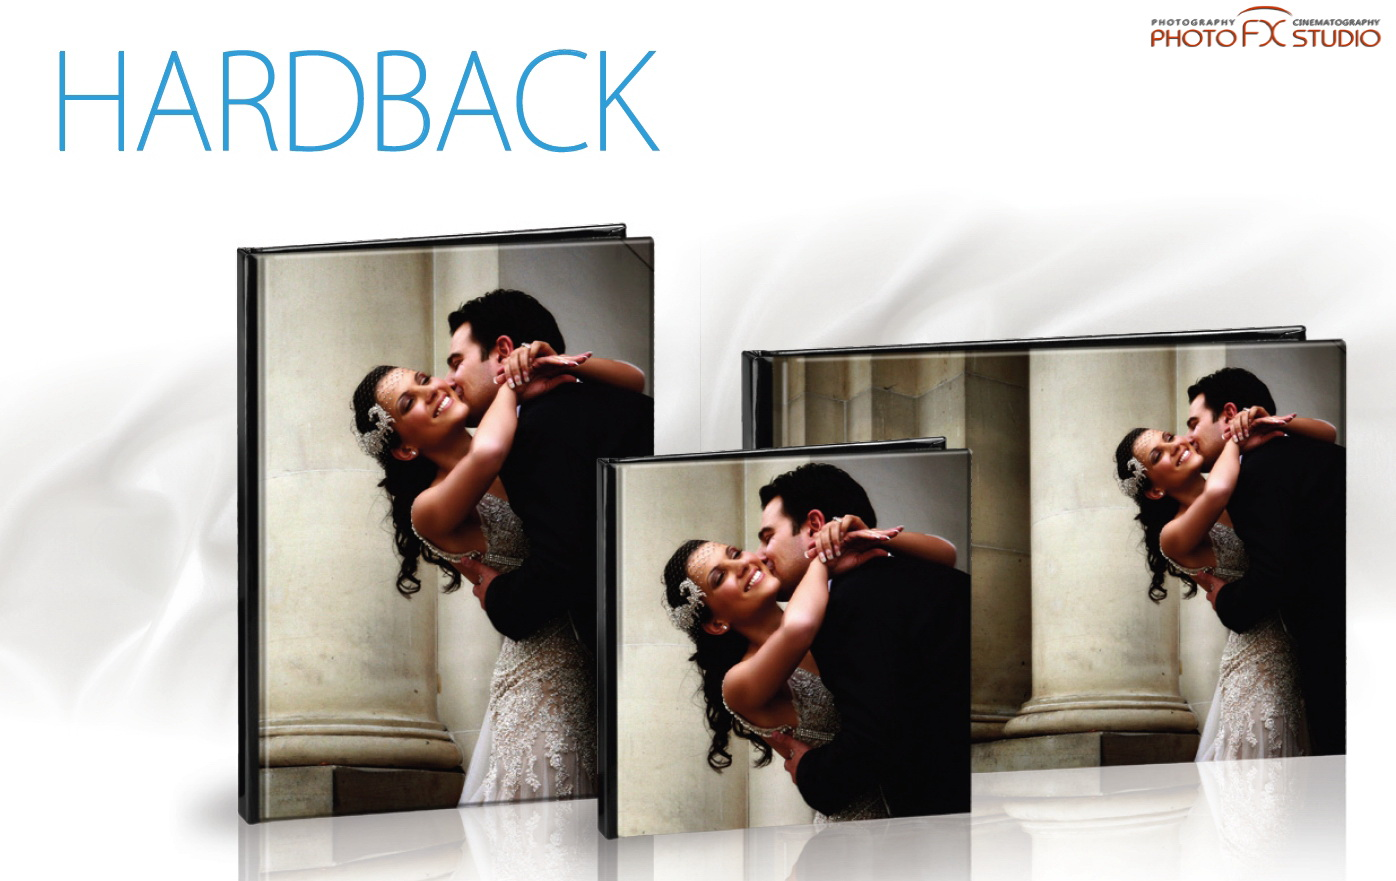 wedding album design | Photo FX Studio - Visual Storytellers